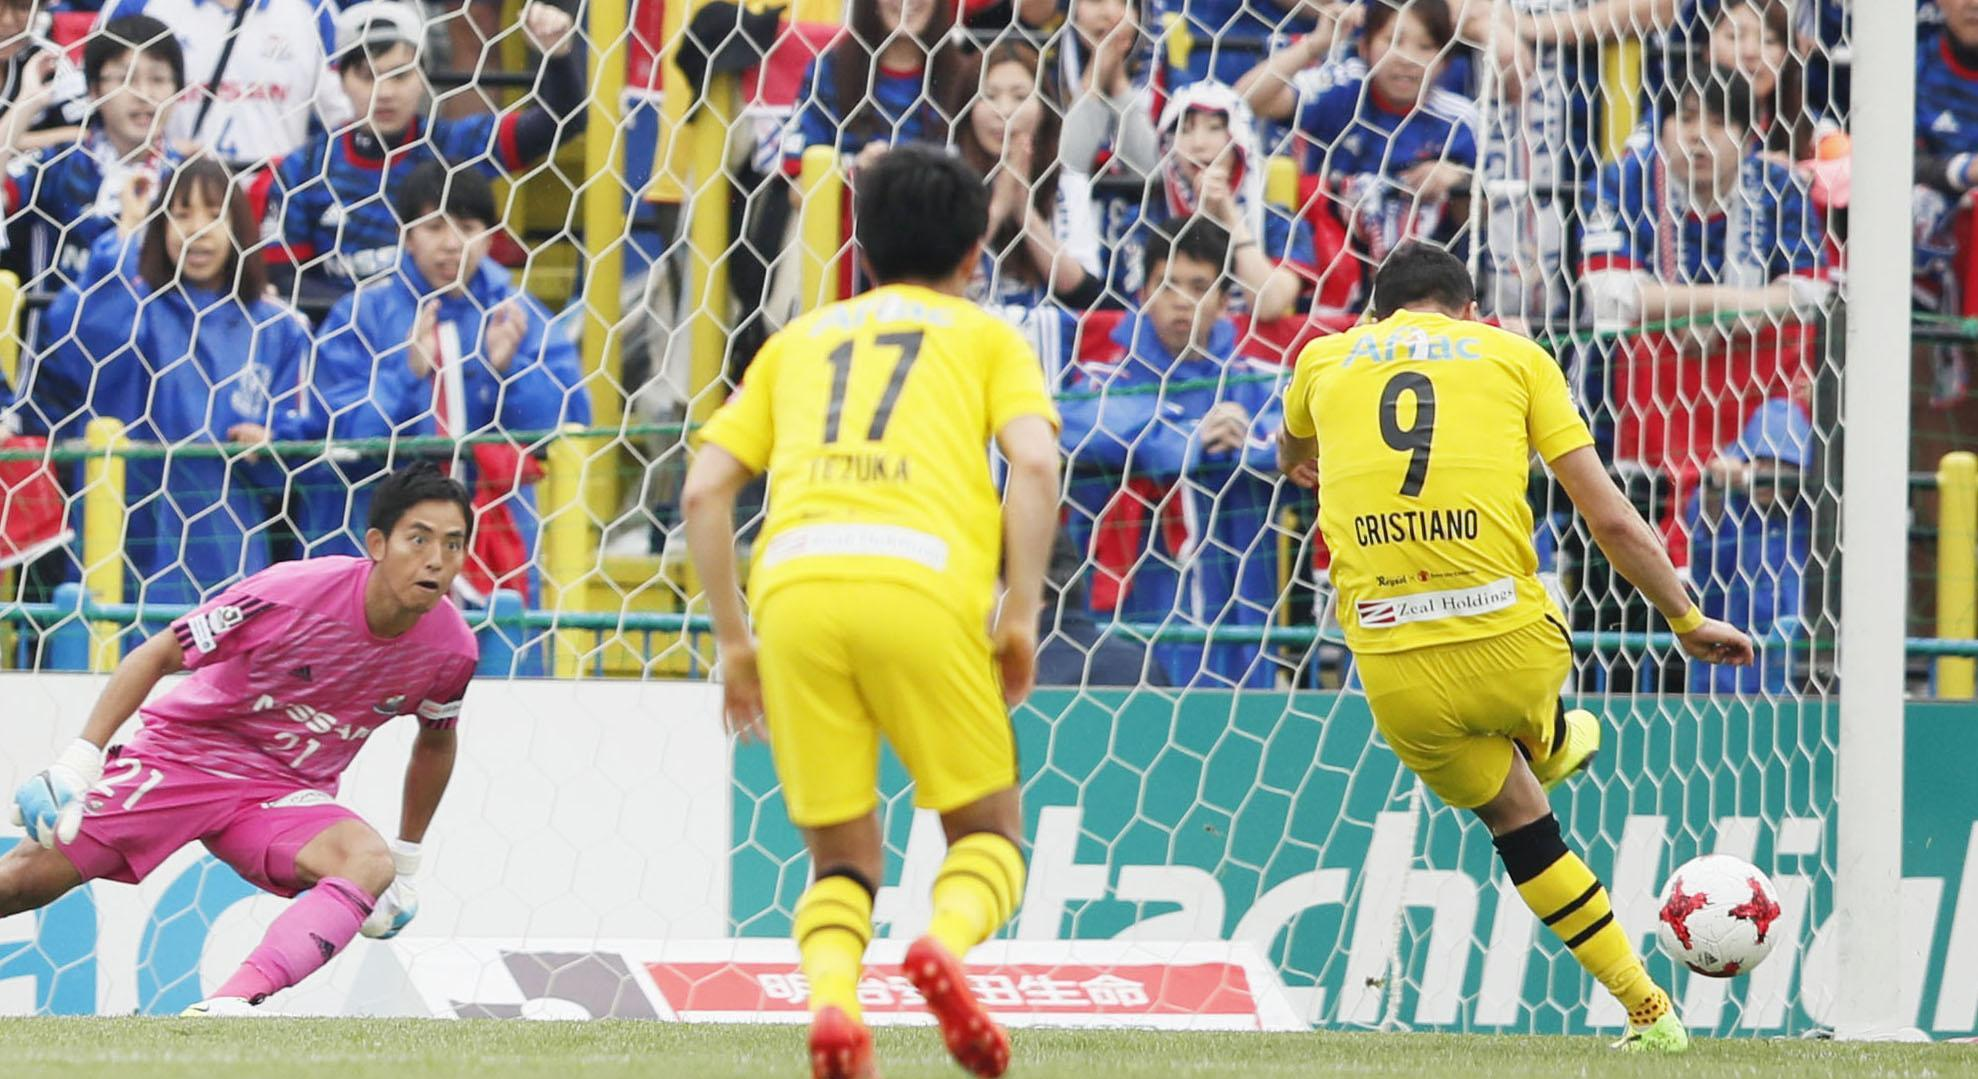 Reysol's Cristiano scores a penalty against Marinos on Saturday.   KYODO